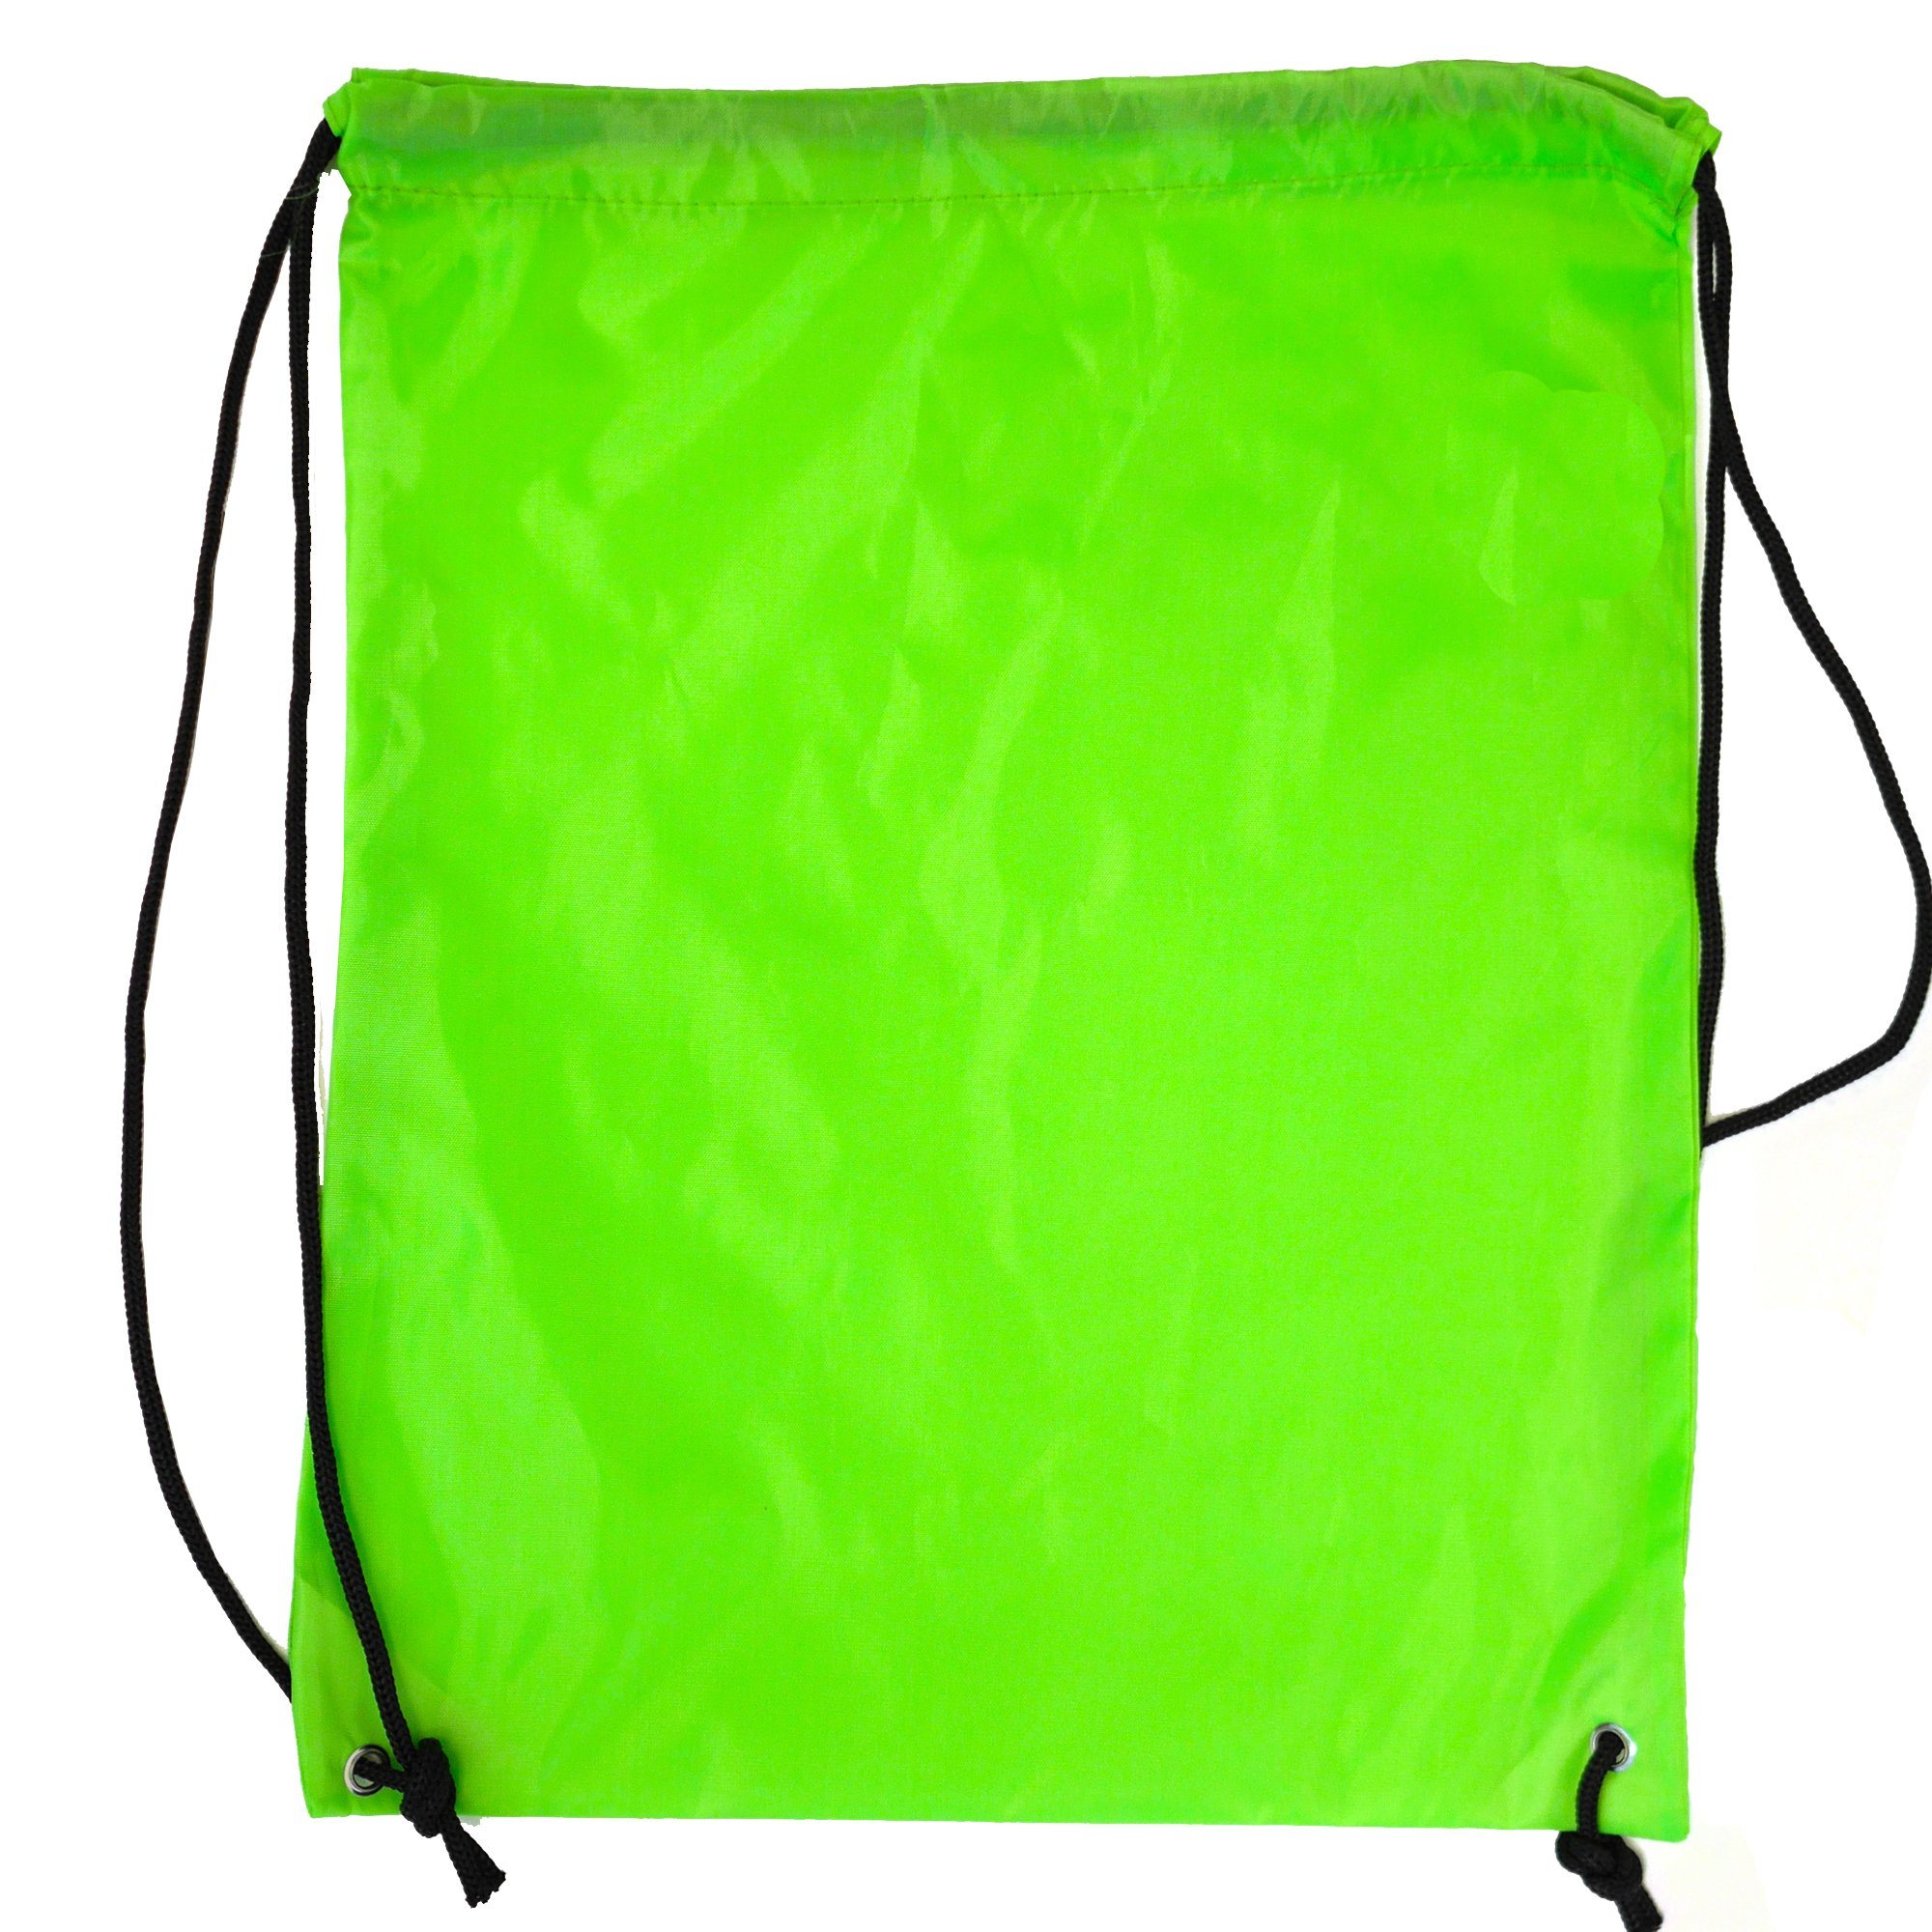 200-Pack 210D POLYESTER Drawstring Backpack, Gym Sports, Outdoor Backpack, Camping and Hiking Bags (1 BOX (200 Pack), Lime Green)